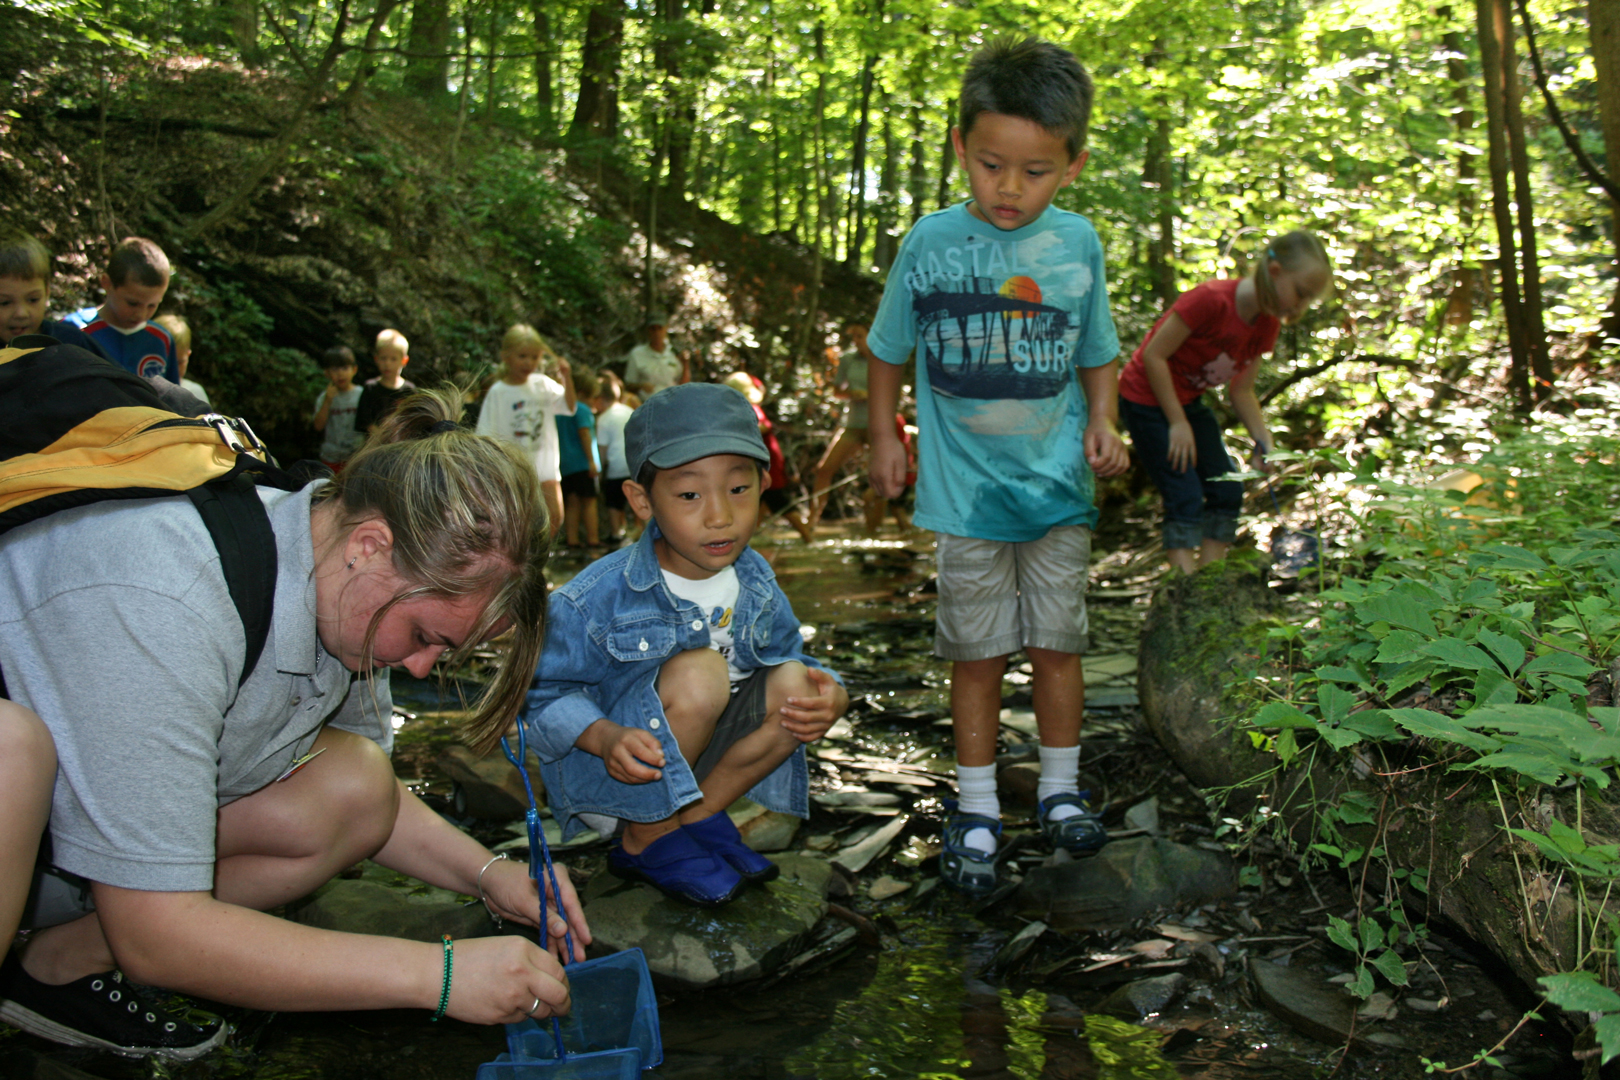 Camp counselor and campers search for critters in a ravine at Highbanks.